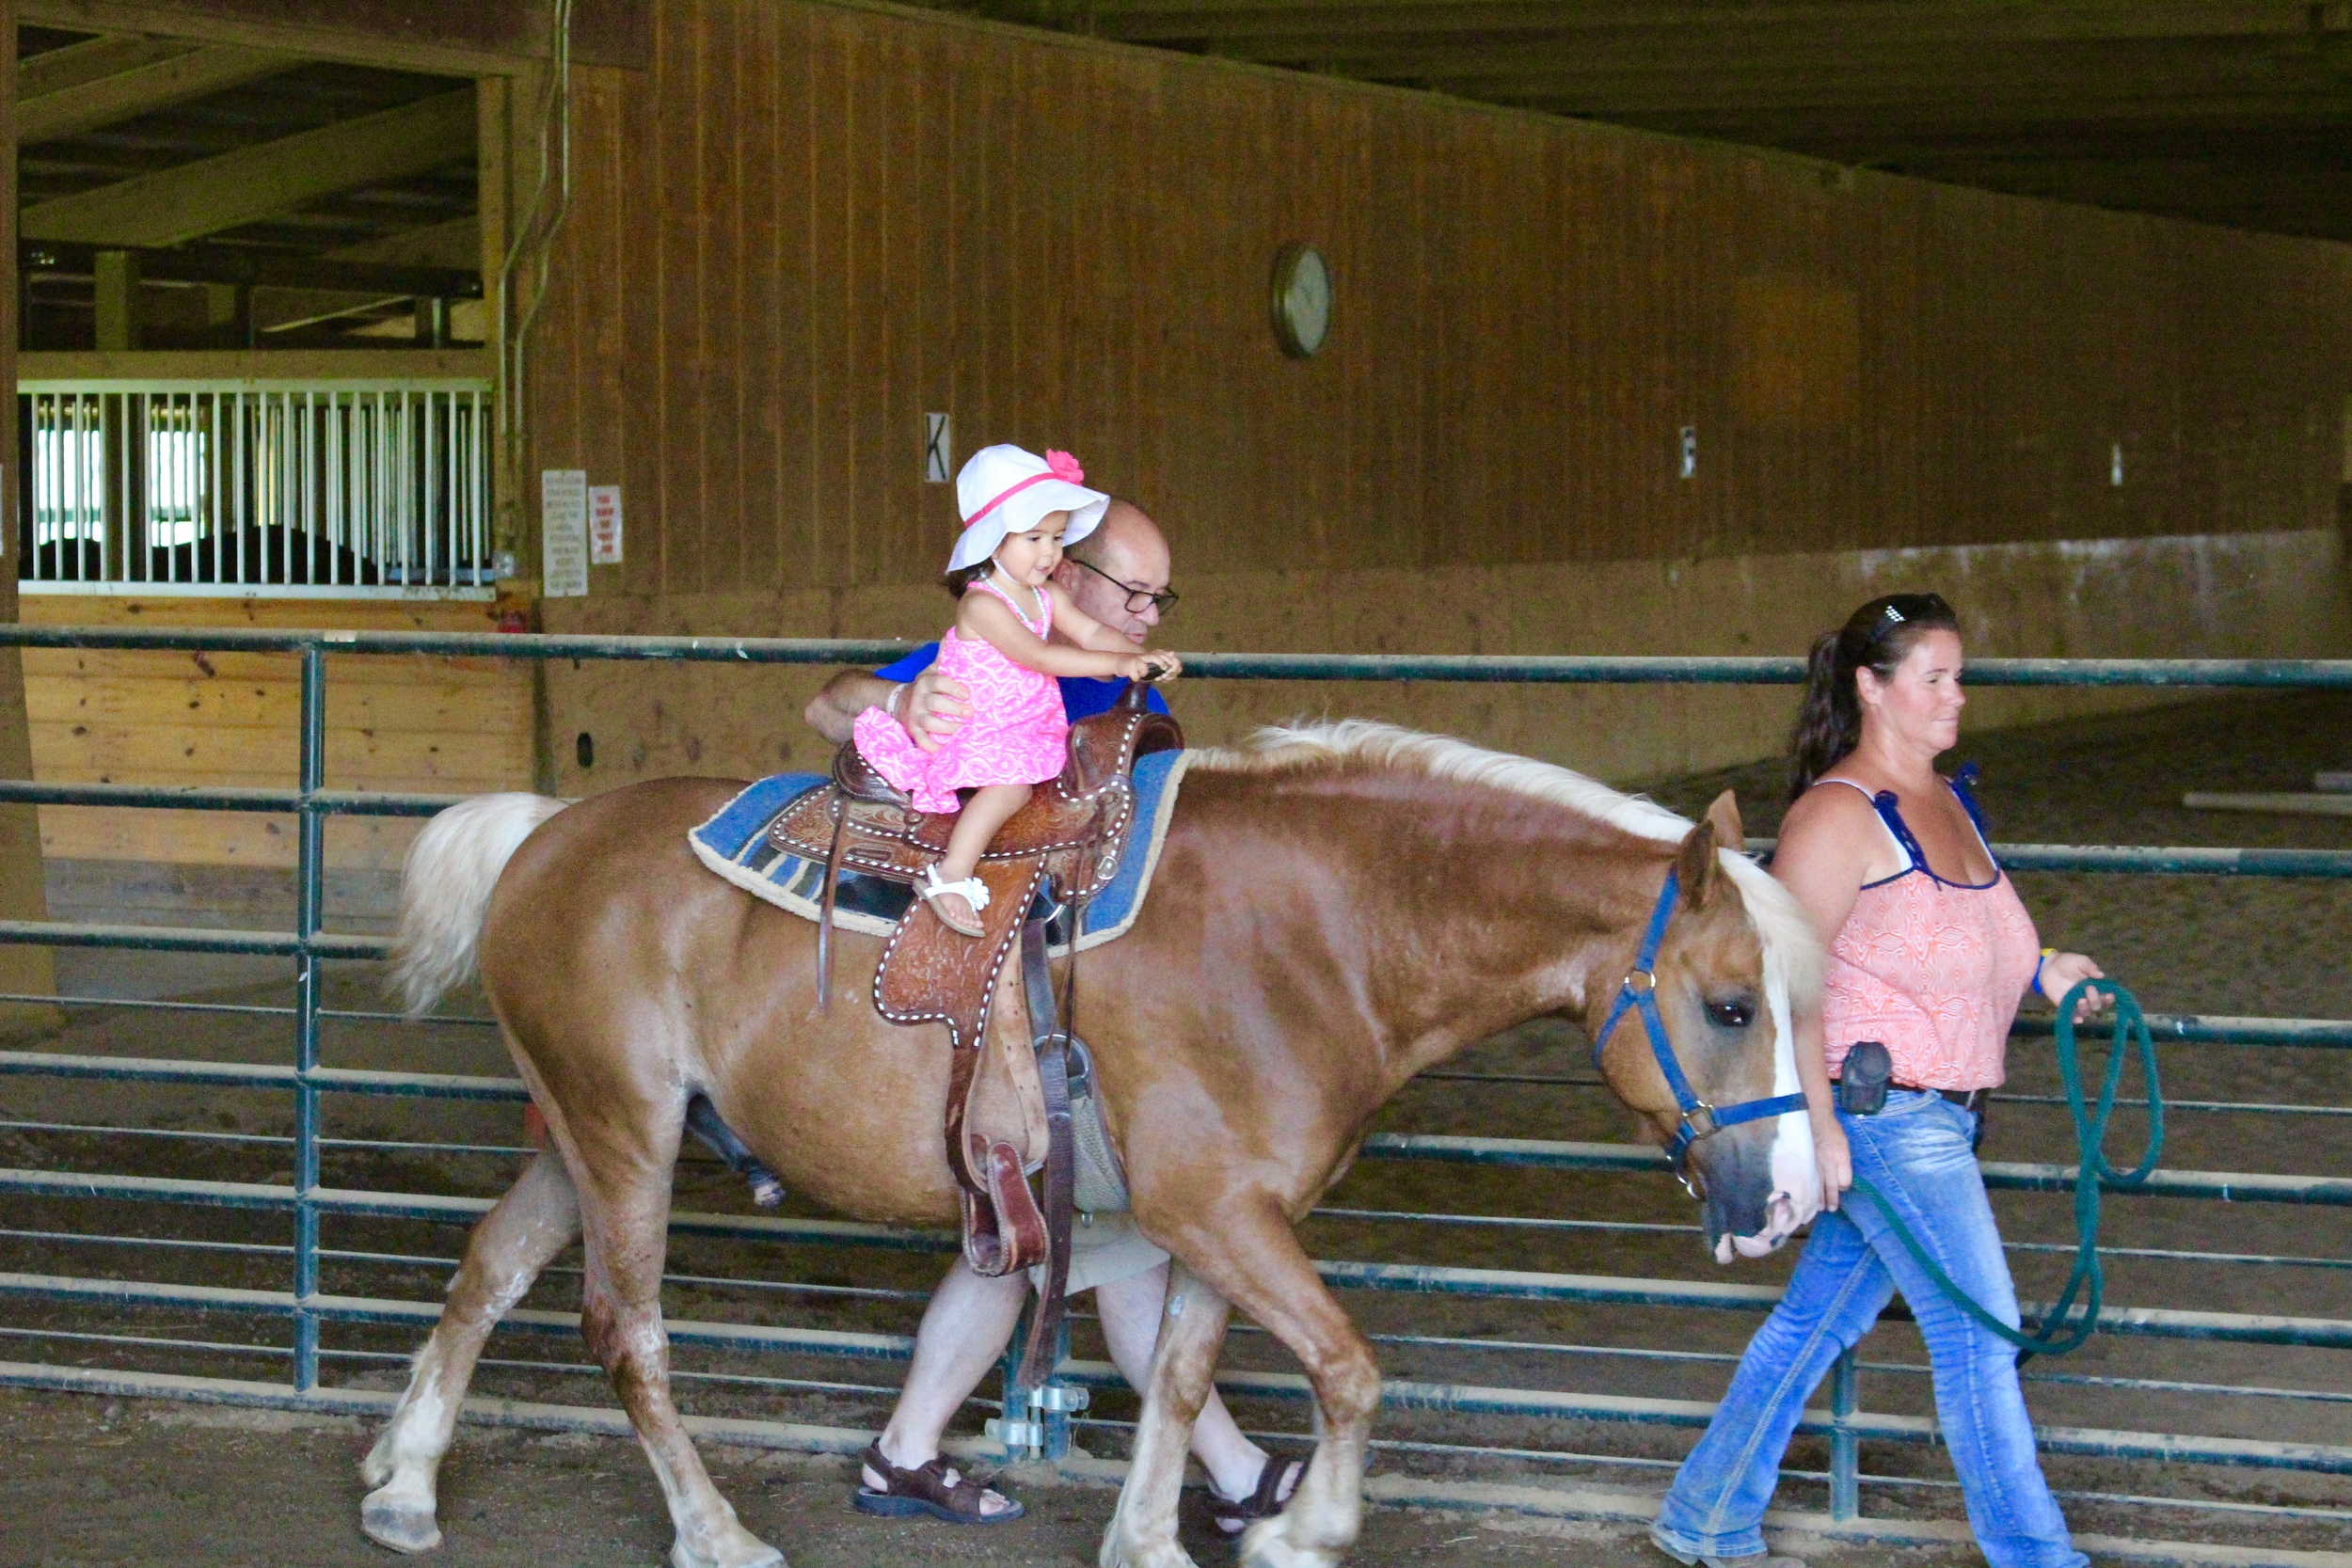 Her first time riding a horse<3